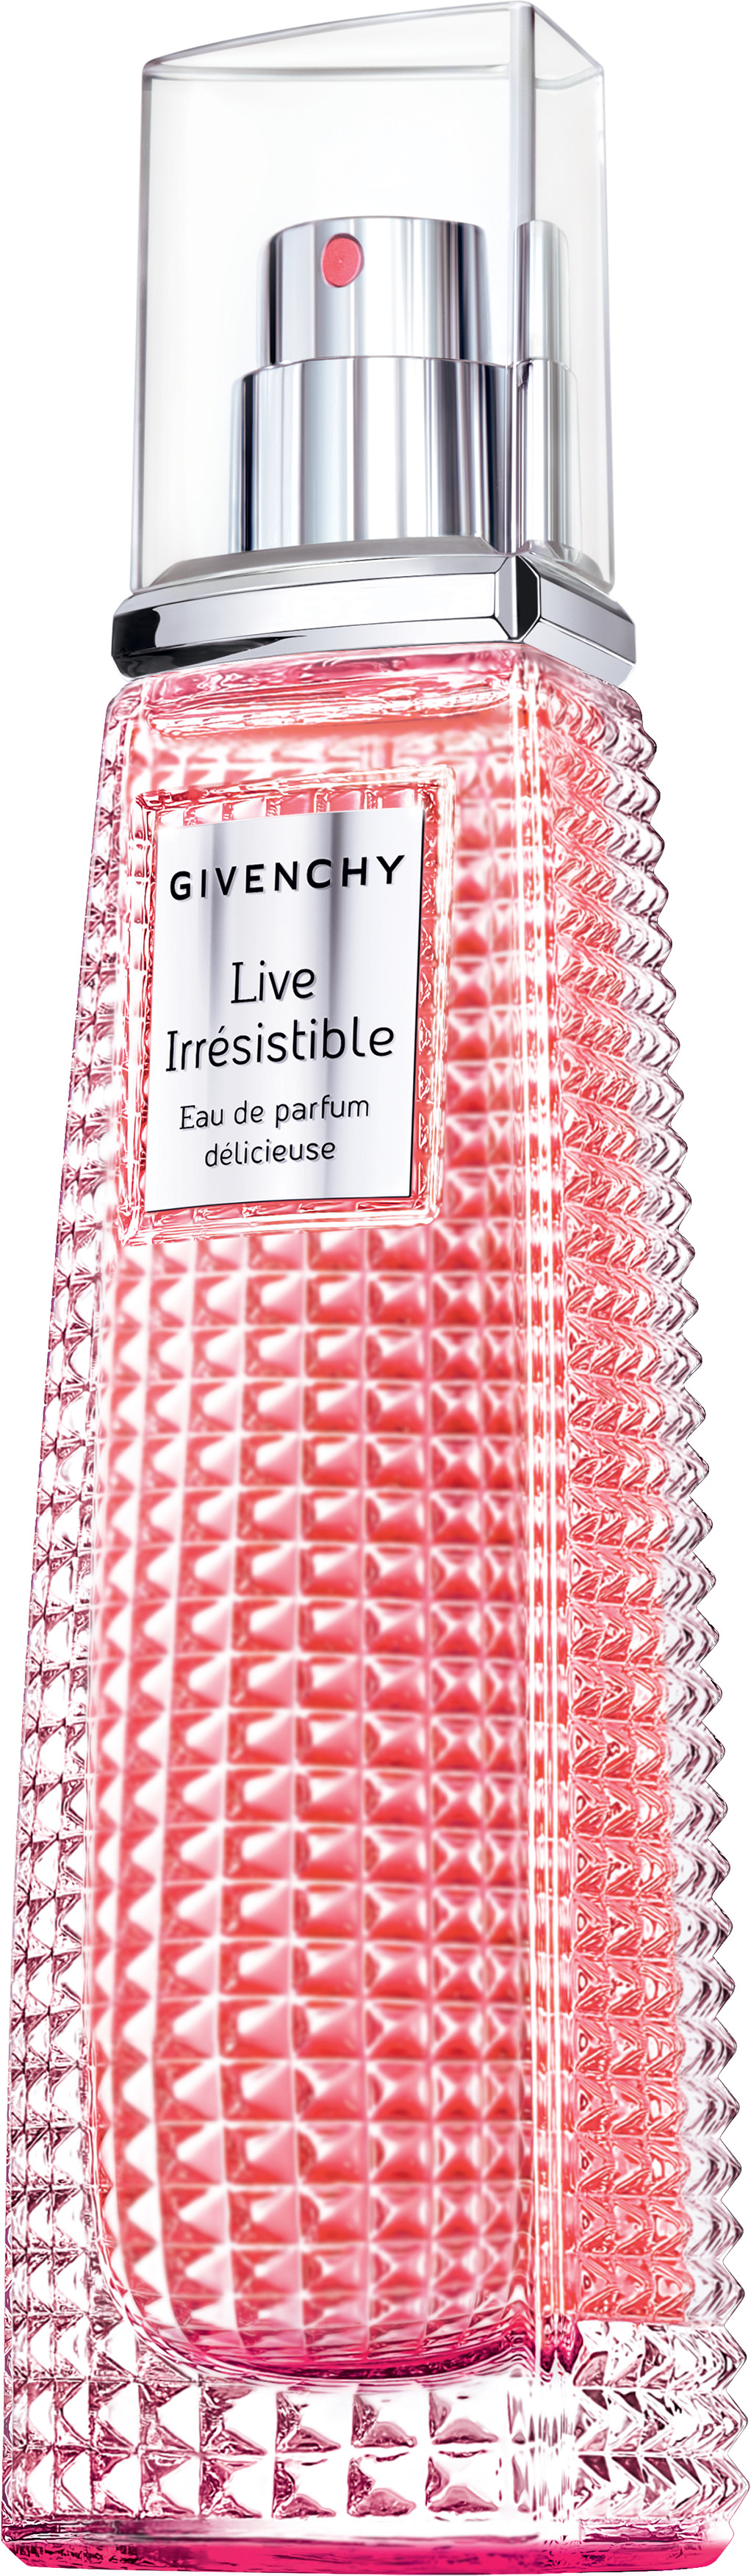 Givenchy Live Irresistible W EDP 75ml TESTER